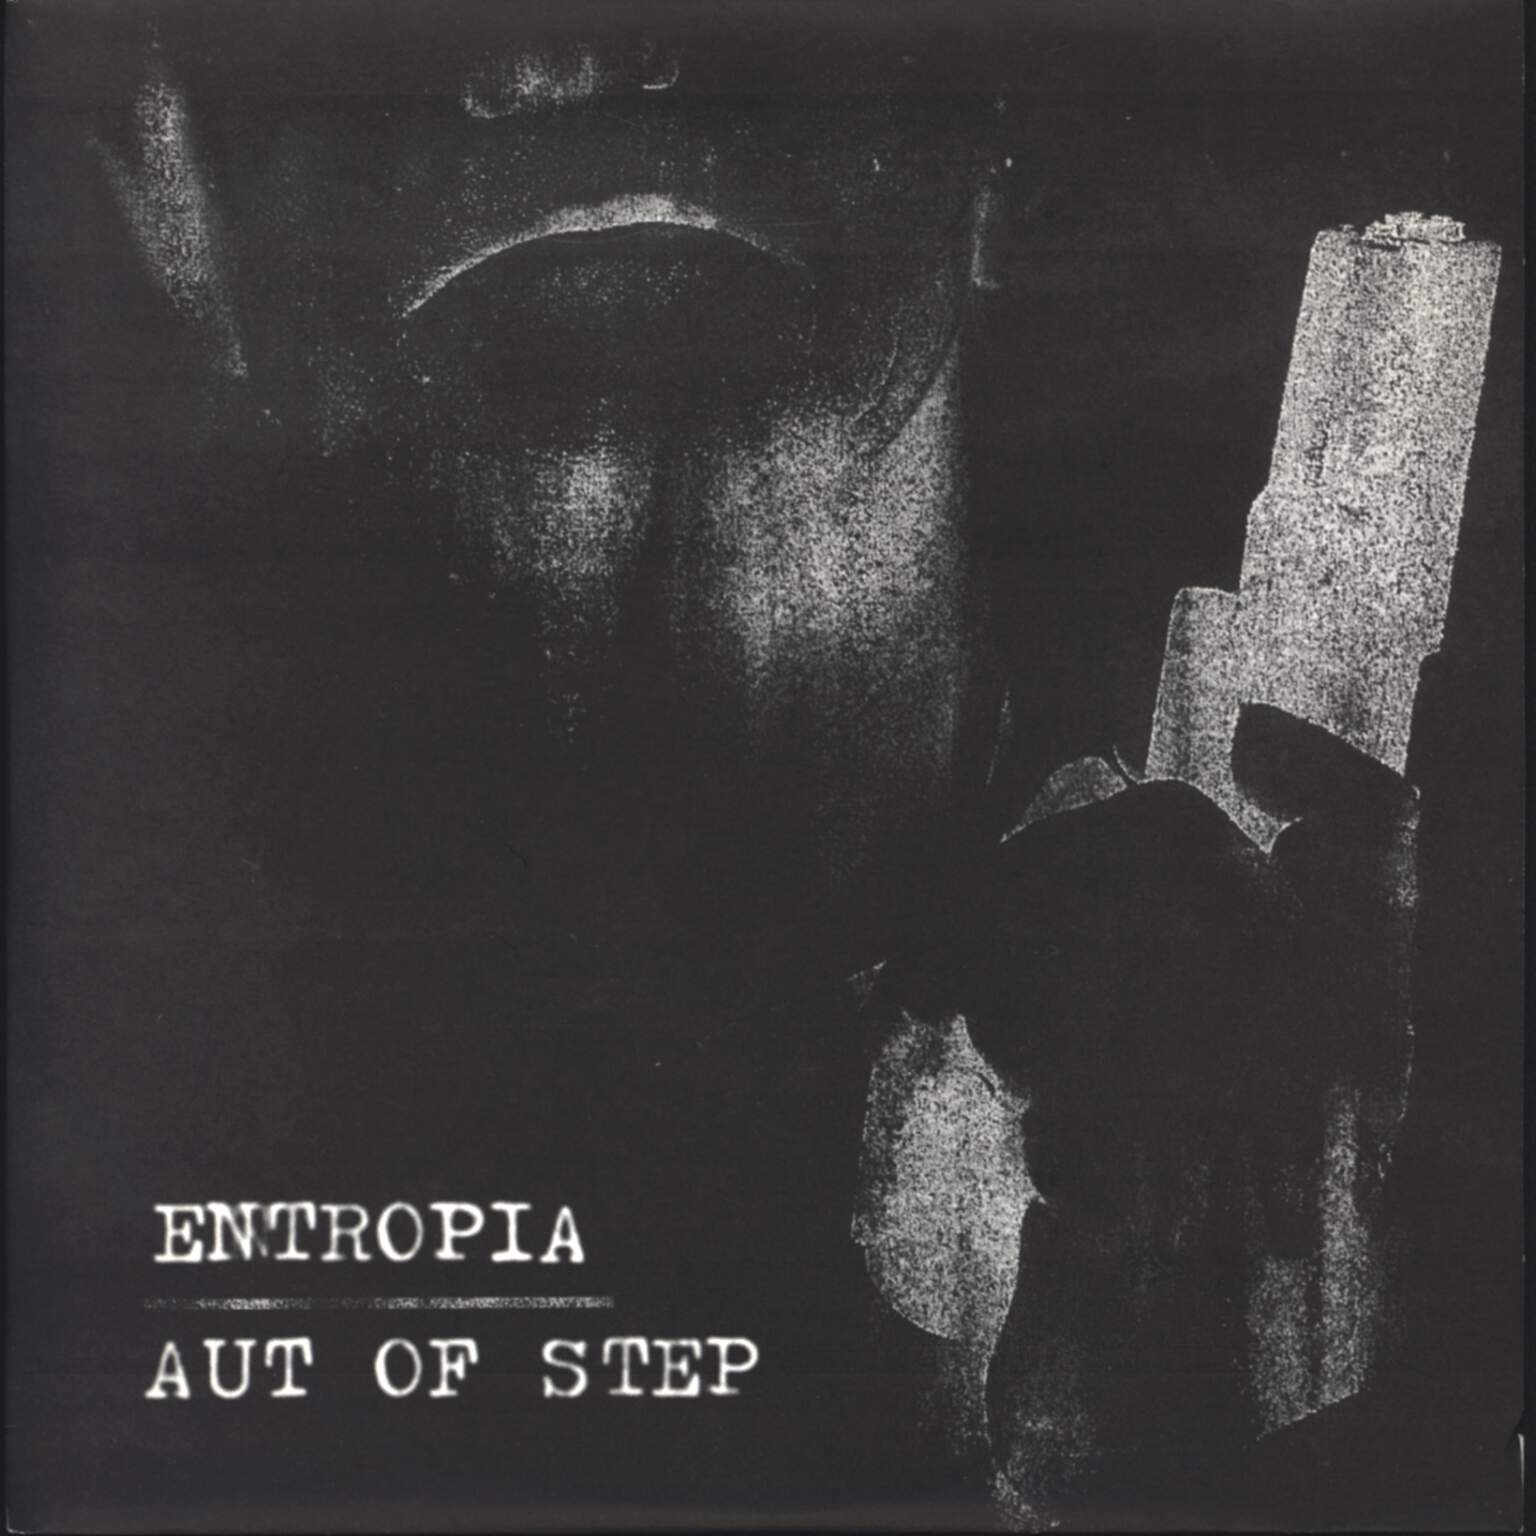 "Entropia: Entropia / Aut Of Step, 7"" Single (Vinyl)"